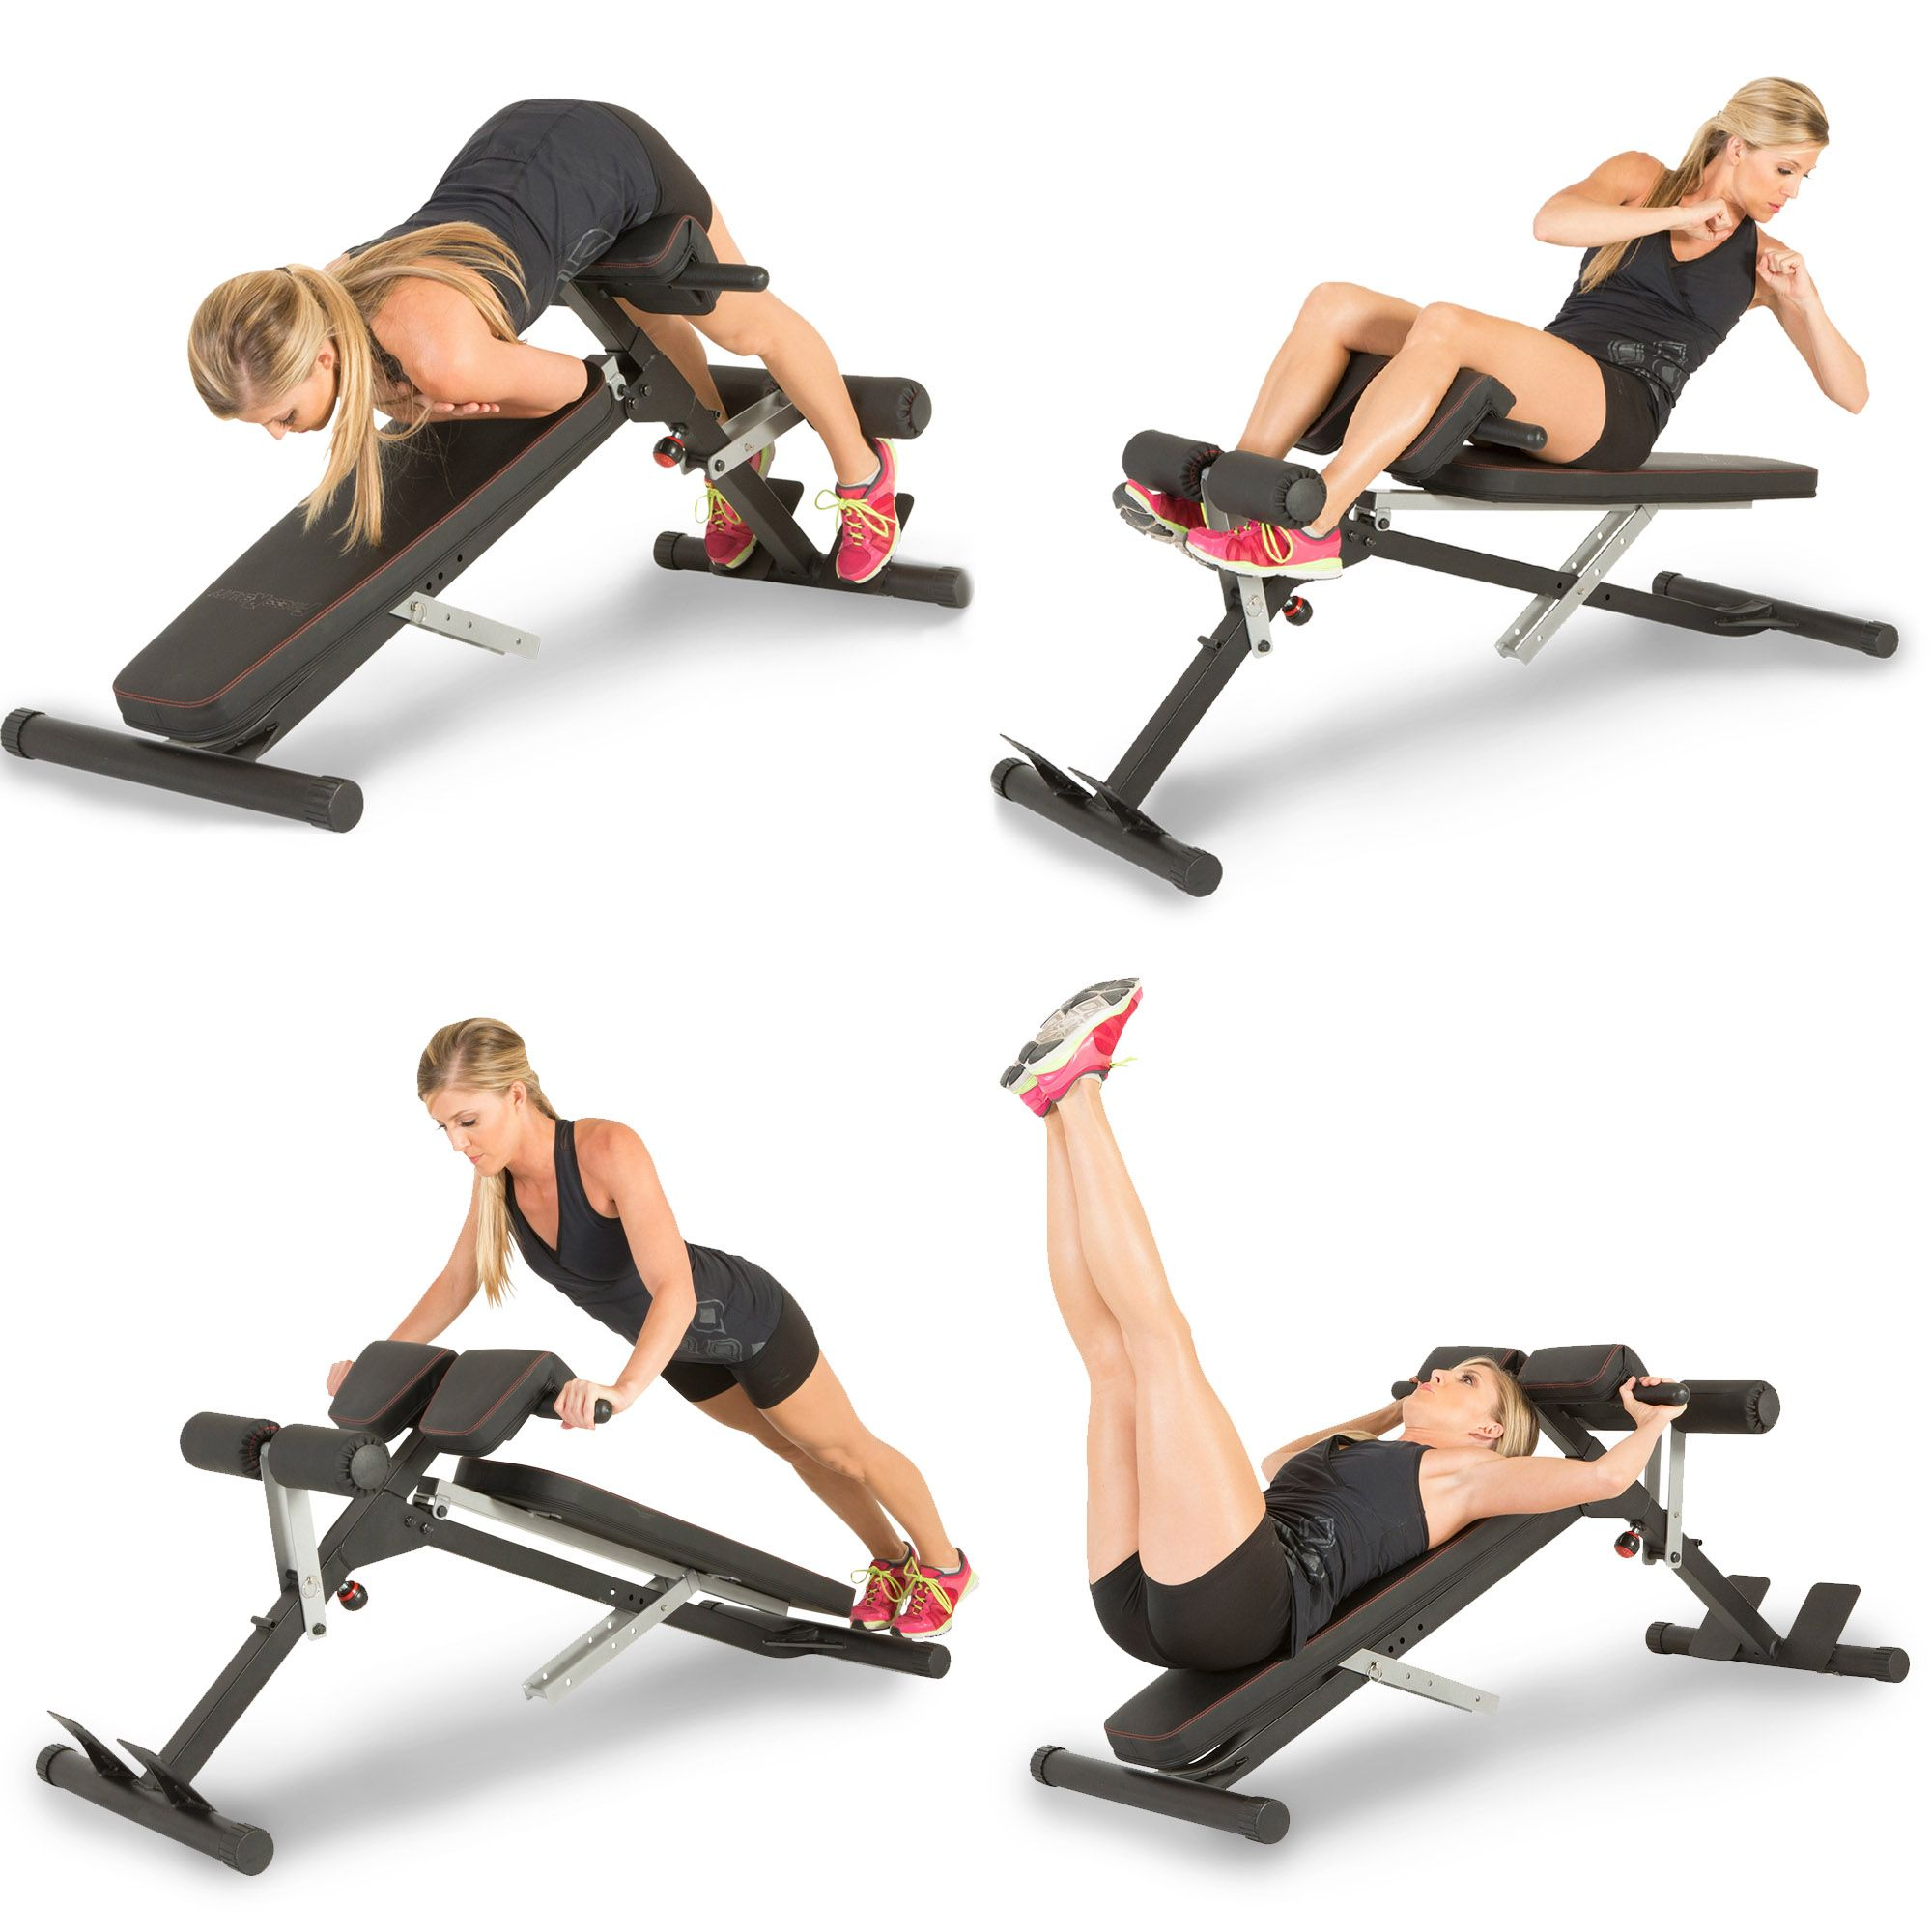 Adjustable Weight Bench Abdominal Bench Sit-up Fitness Home Gym Exercise Dumbbel